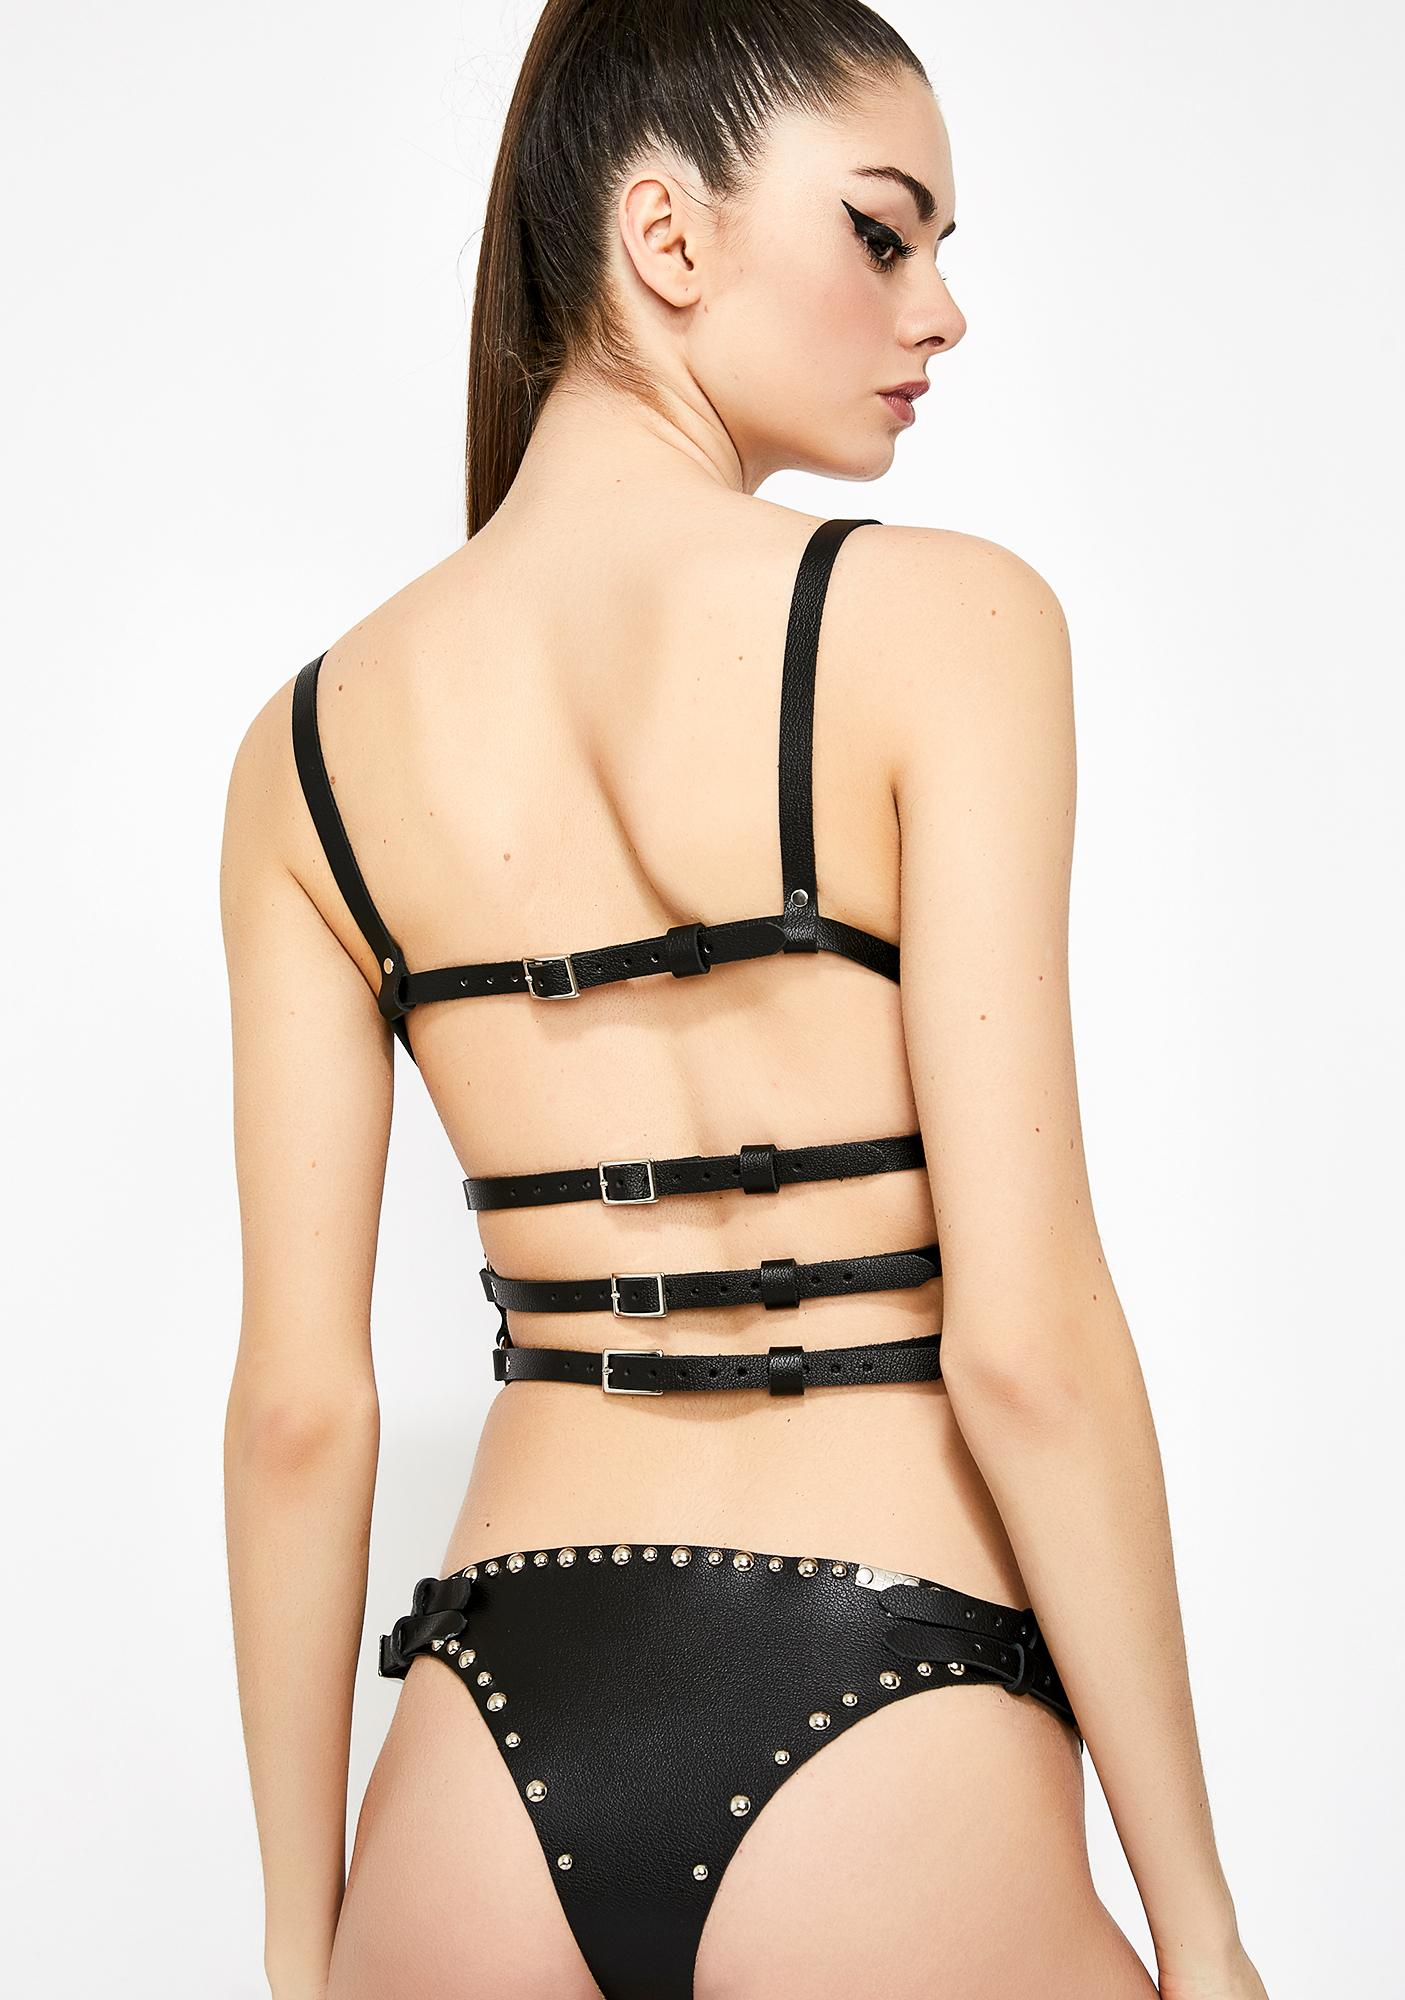 H.O.S. LEATHER Hendrix Panties